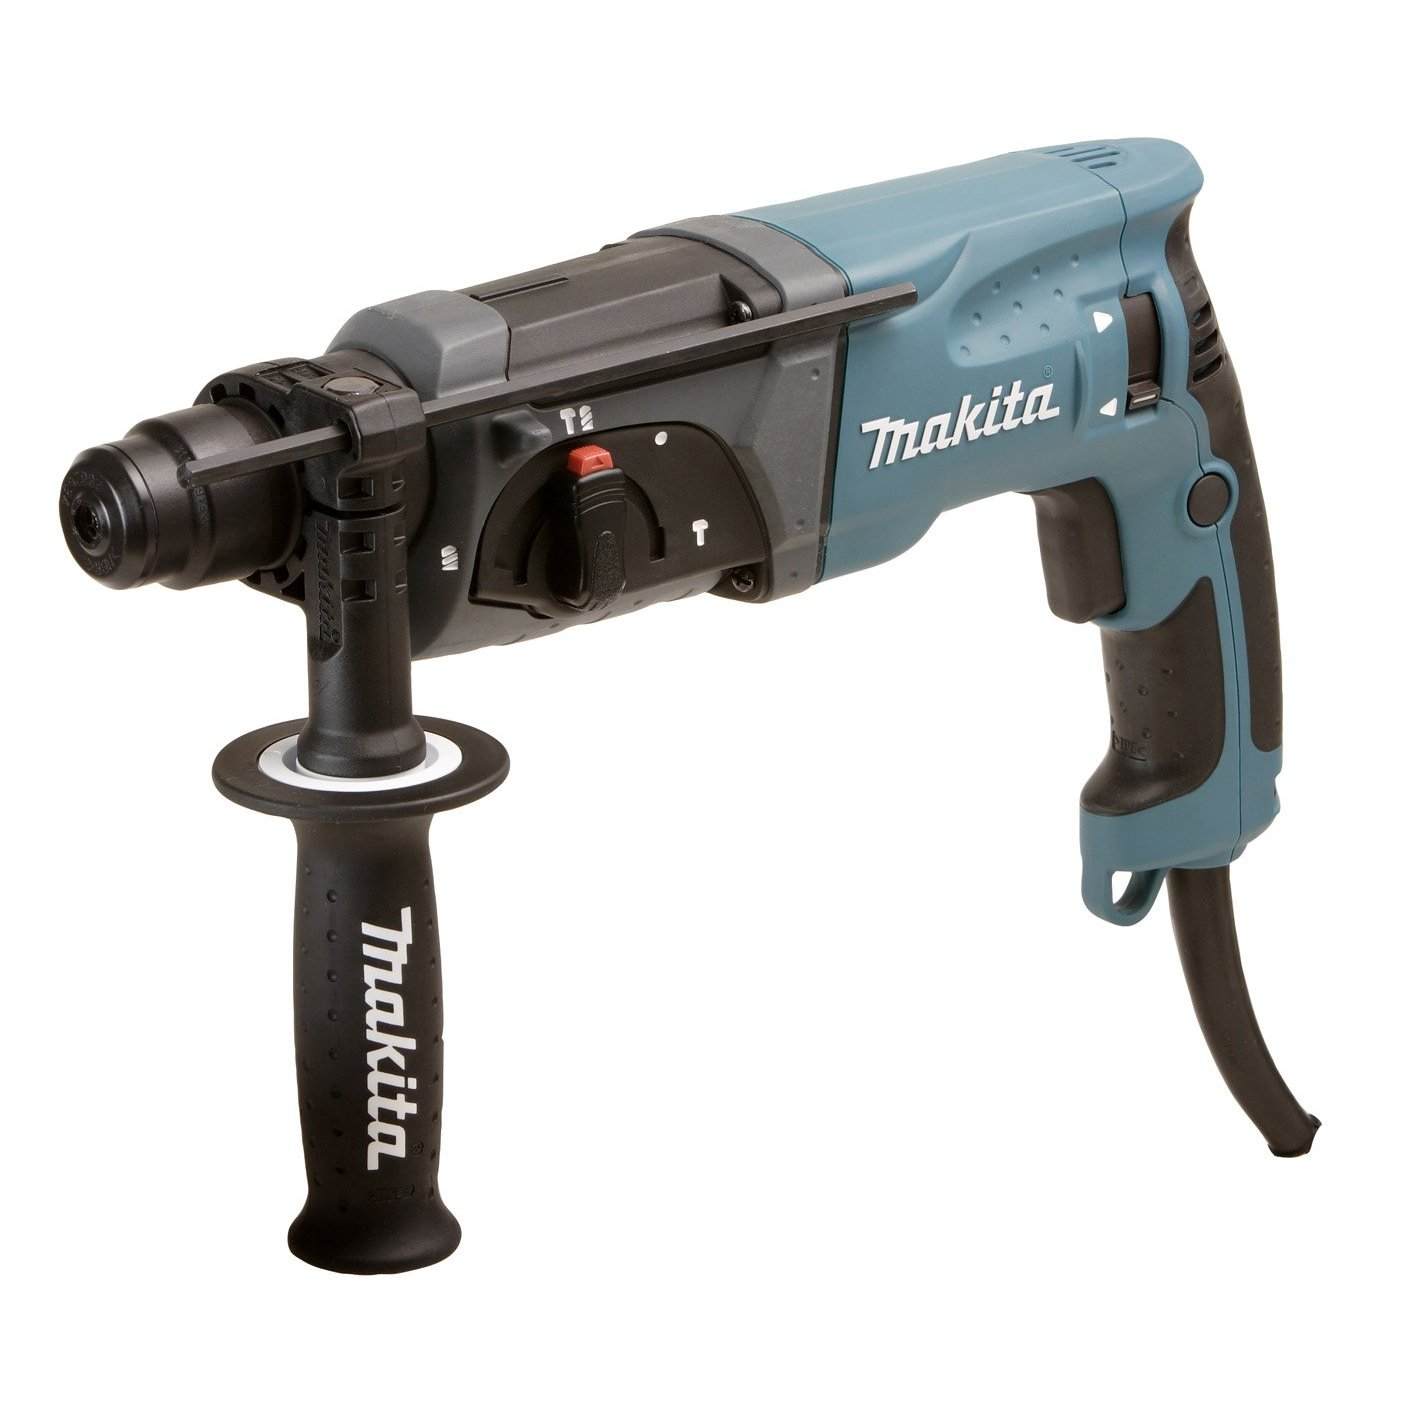 makita hr2470ftx bohrhammer im test. Black Bedroom Furniture Sets. Home Design Ideas